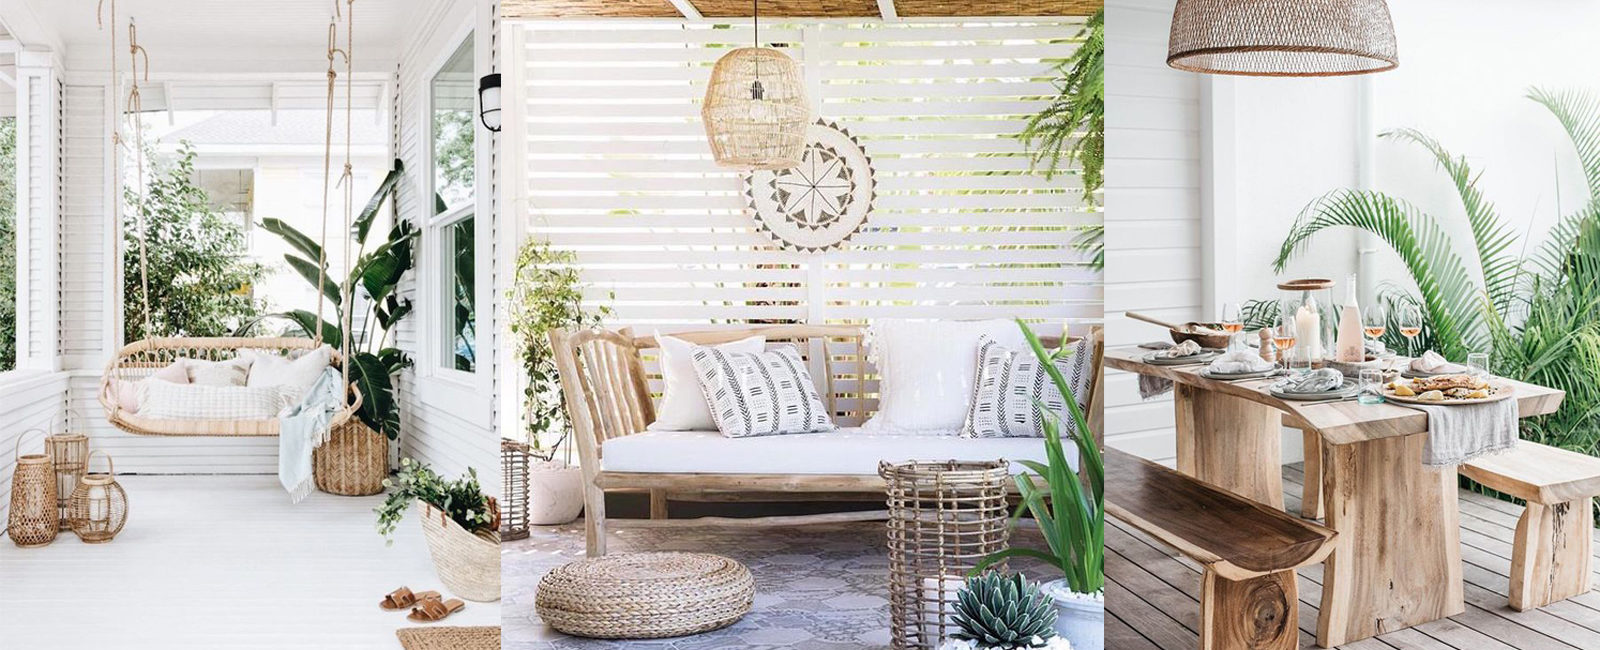 How to furnish a terrace with a natural style